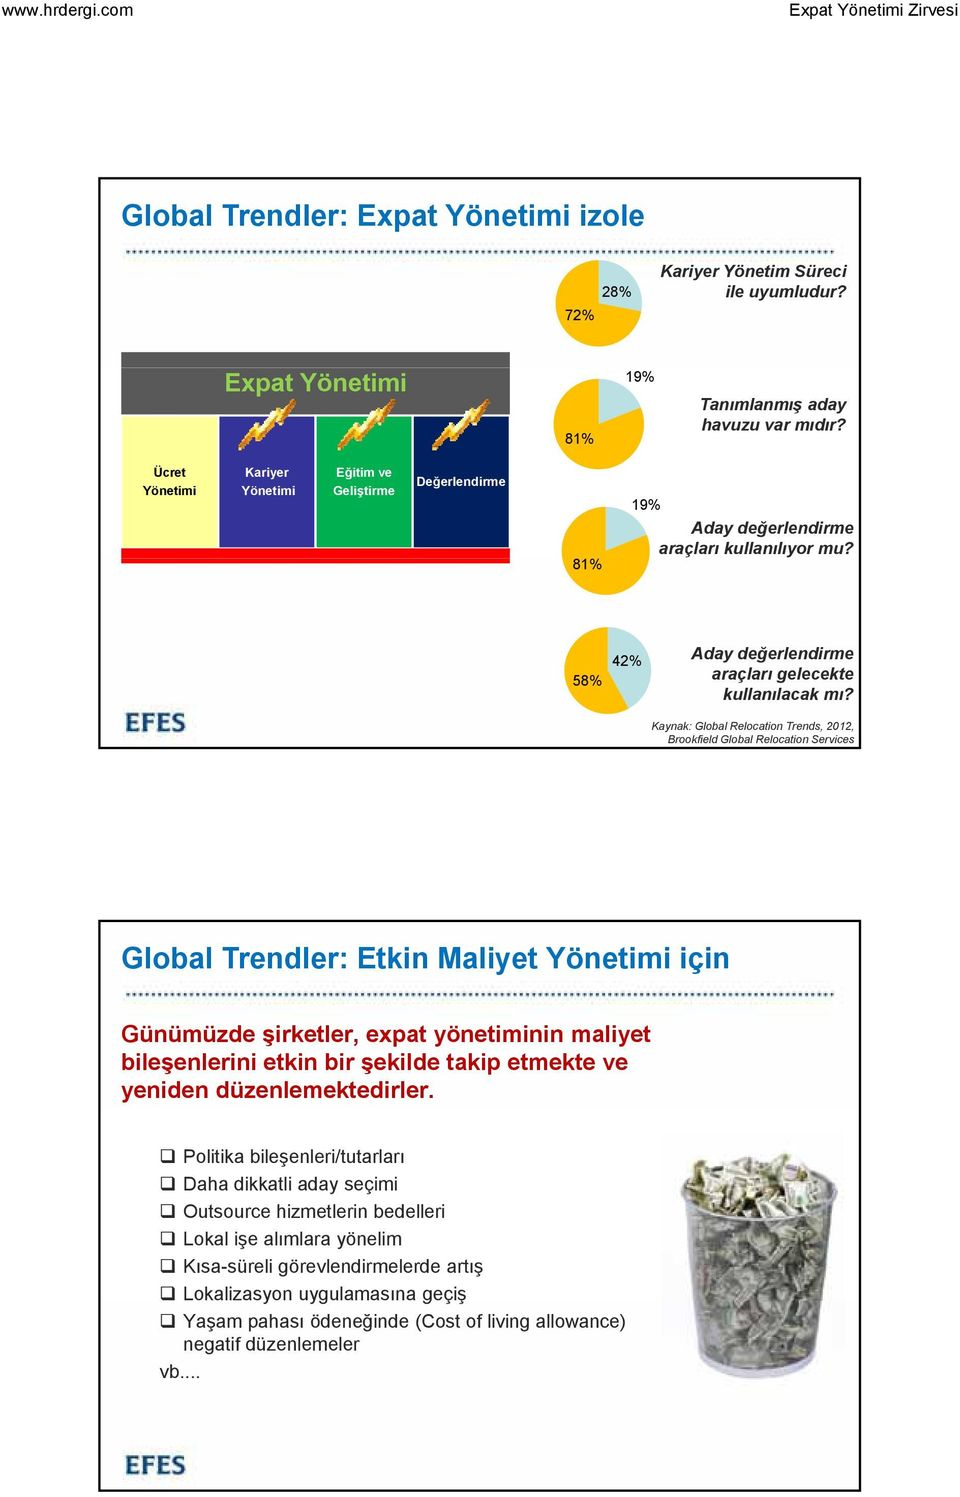 Kaynak: Global Relocation Trends, 202, Brookfield Global Relocation Services Global Trendler: Etkin Maliyet Yönetimi için Günümüzde şirketler, expat yönetiminin maliyet bileşenlerini etkin bir